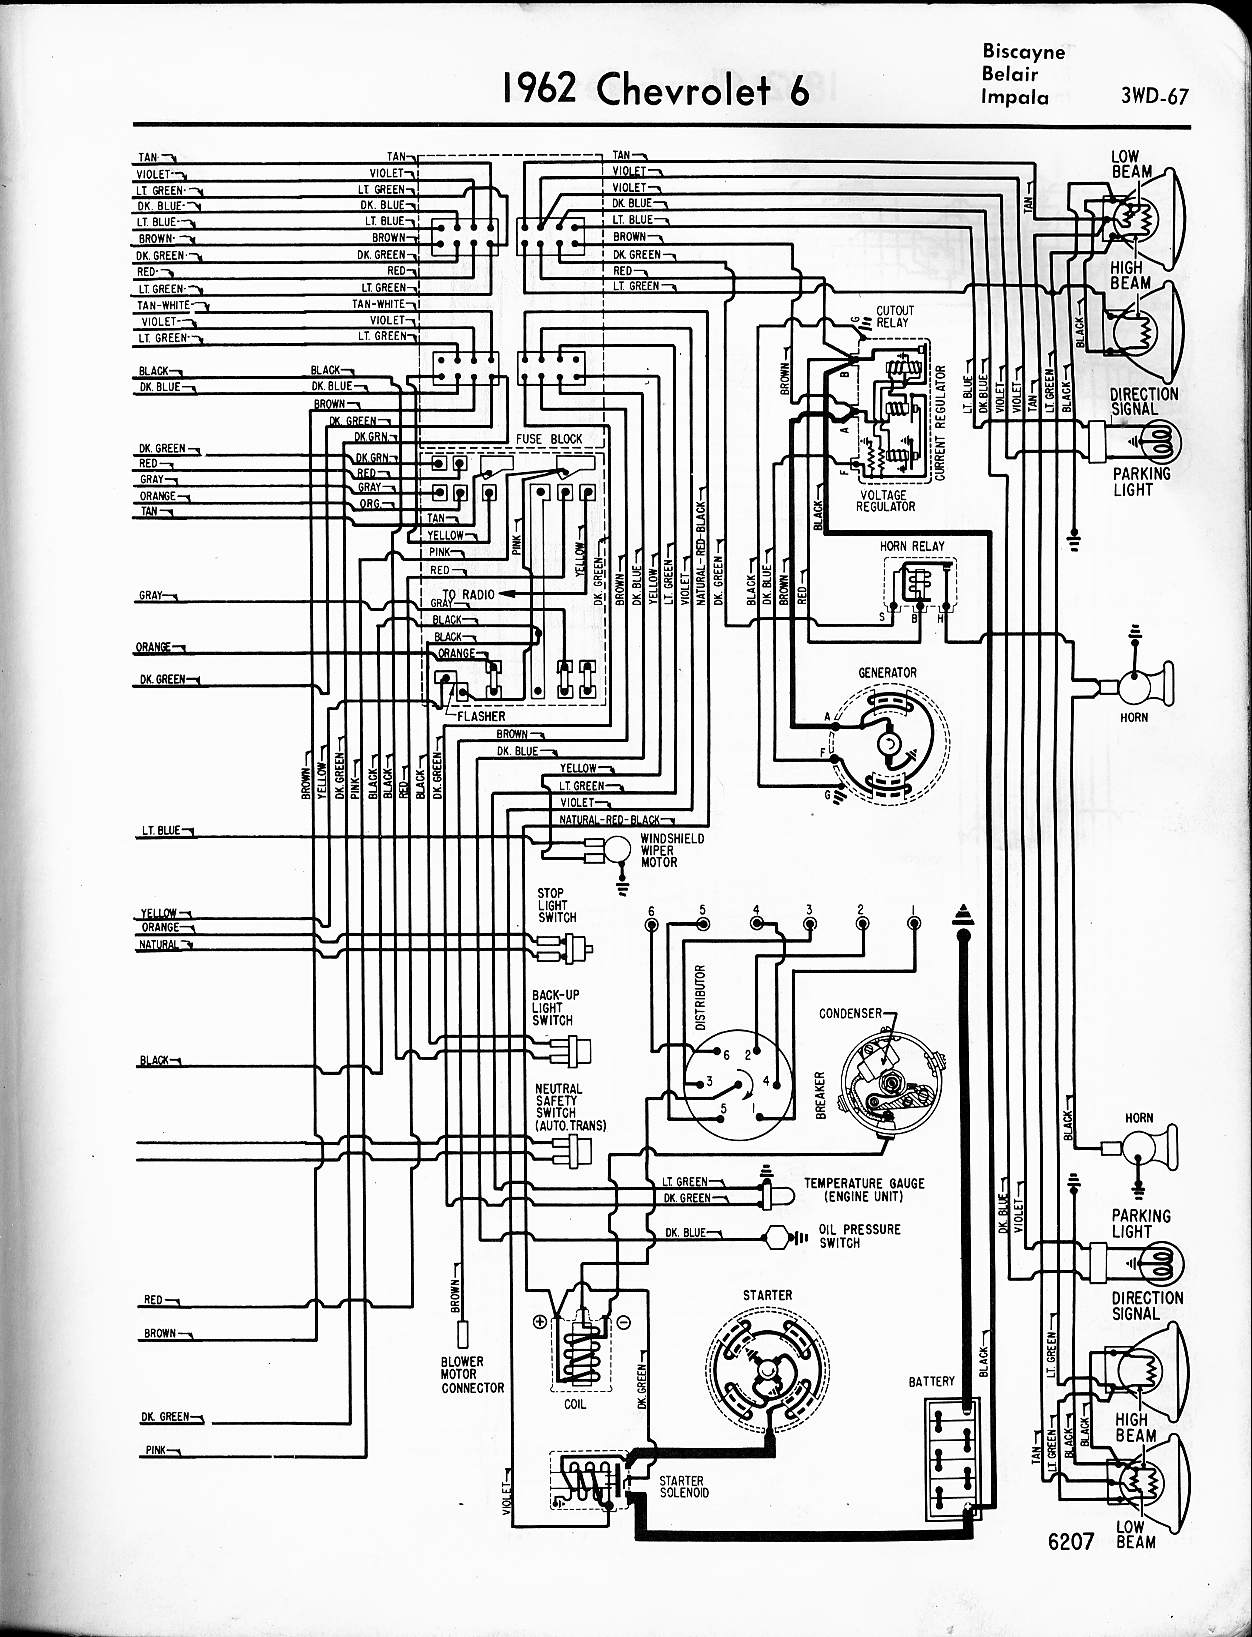 67 Bel Air Wiring Diagram Manual Guide 1963 Impala Wire Harness 57 65 Chevy Diagrams Rh Oldcarmanualproject Com 55 63